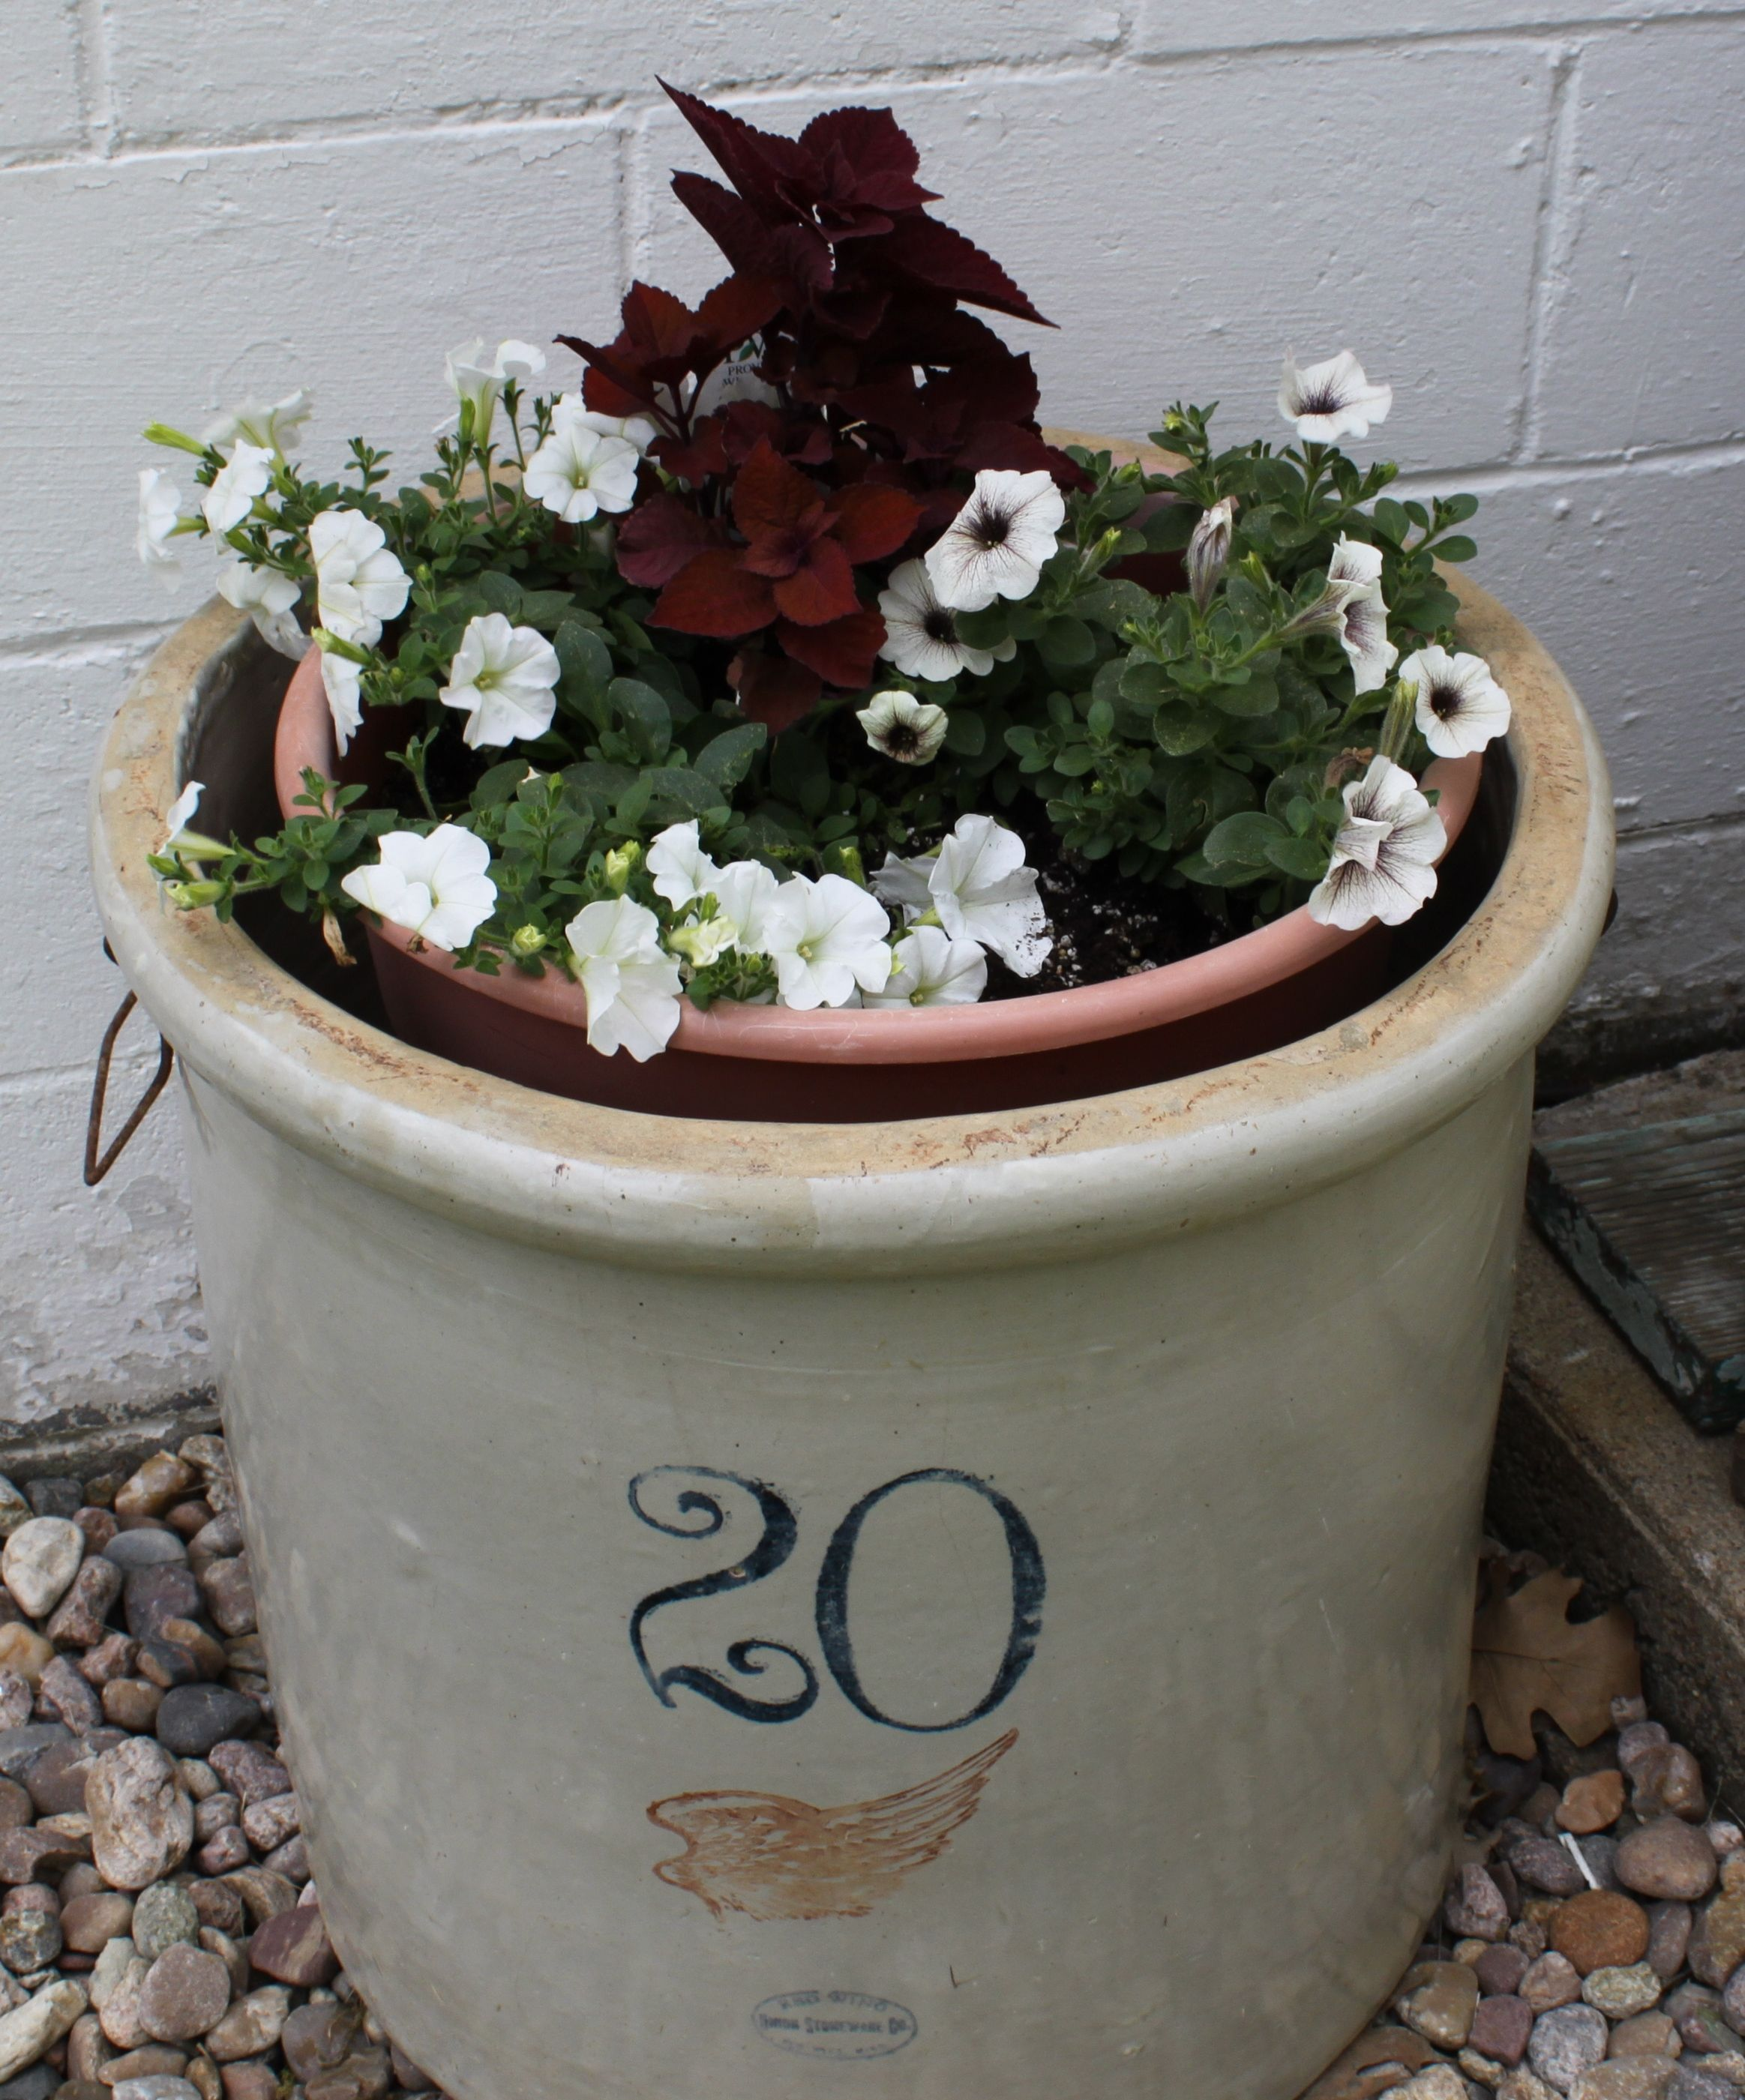 20 Gal. Crock Planter @Red Wing Stoneware By Spompinato U0026 Co..com